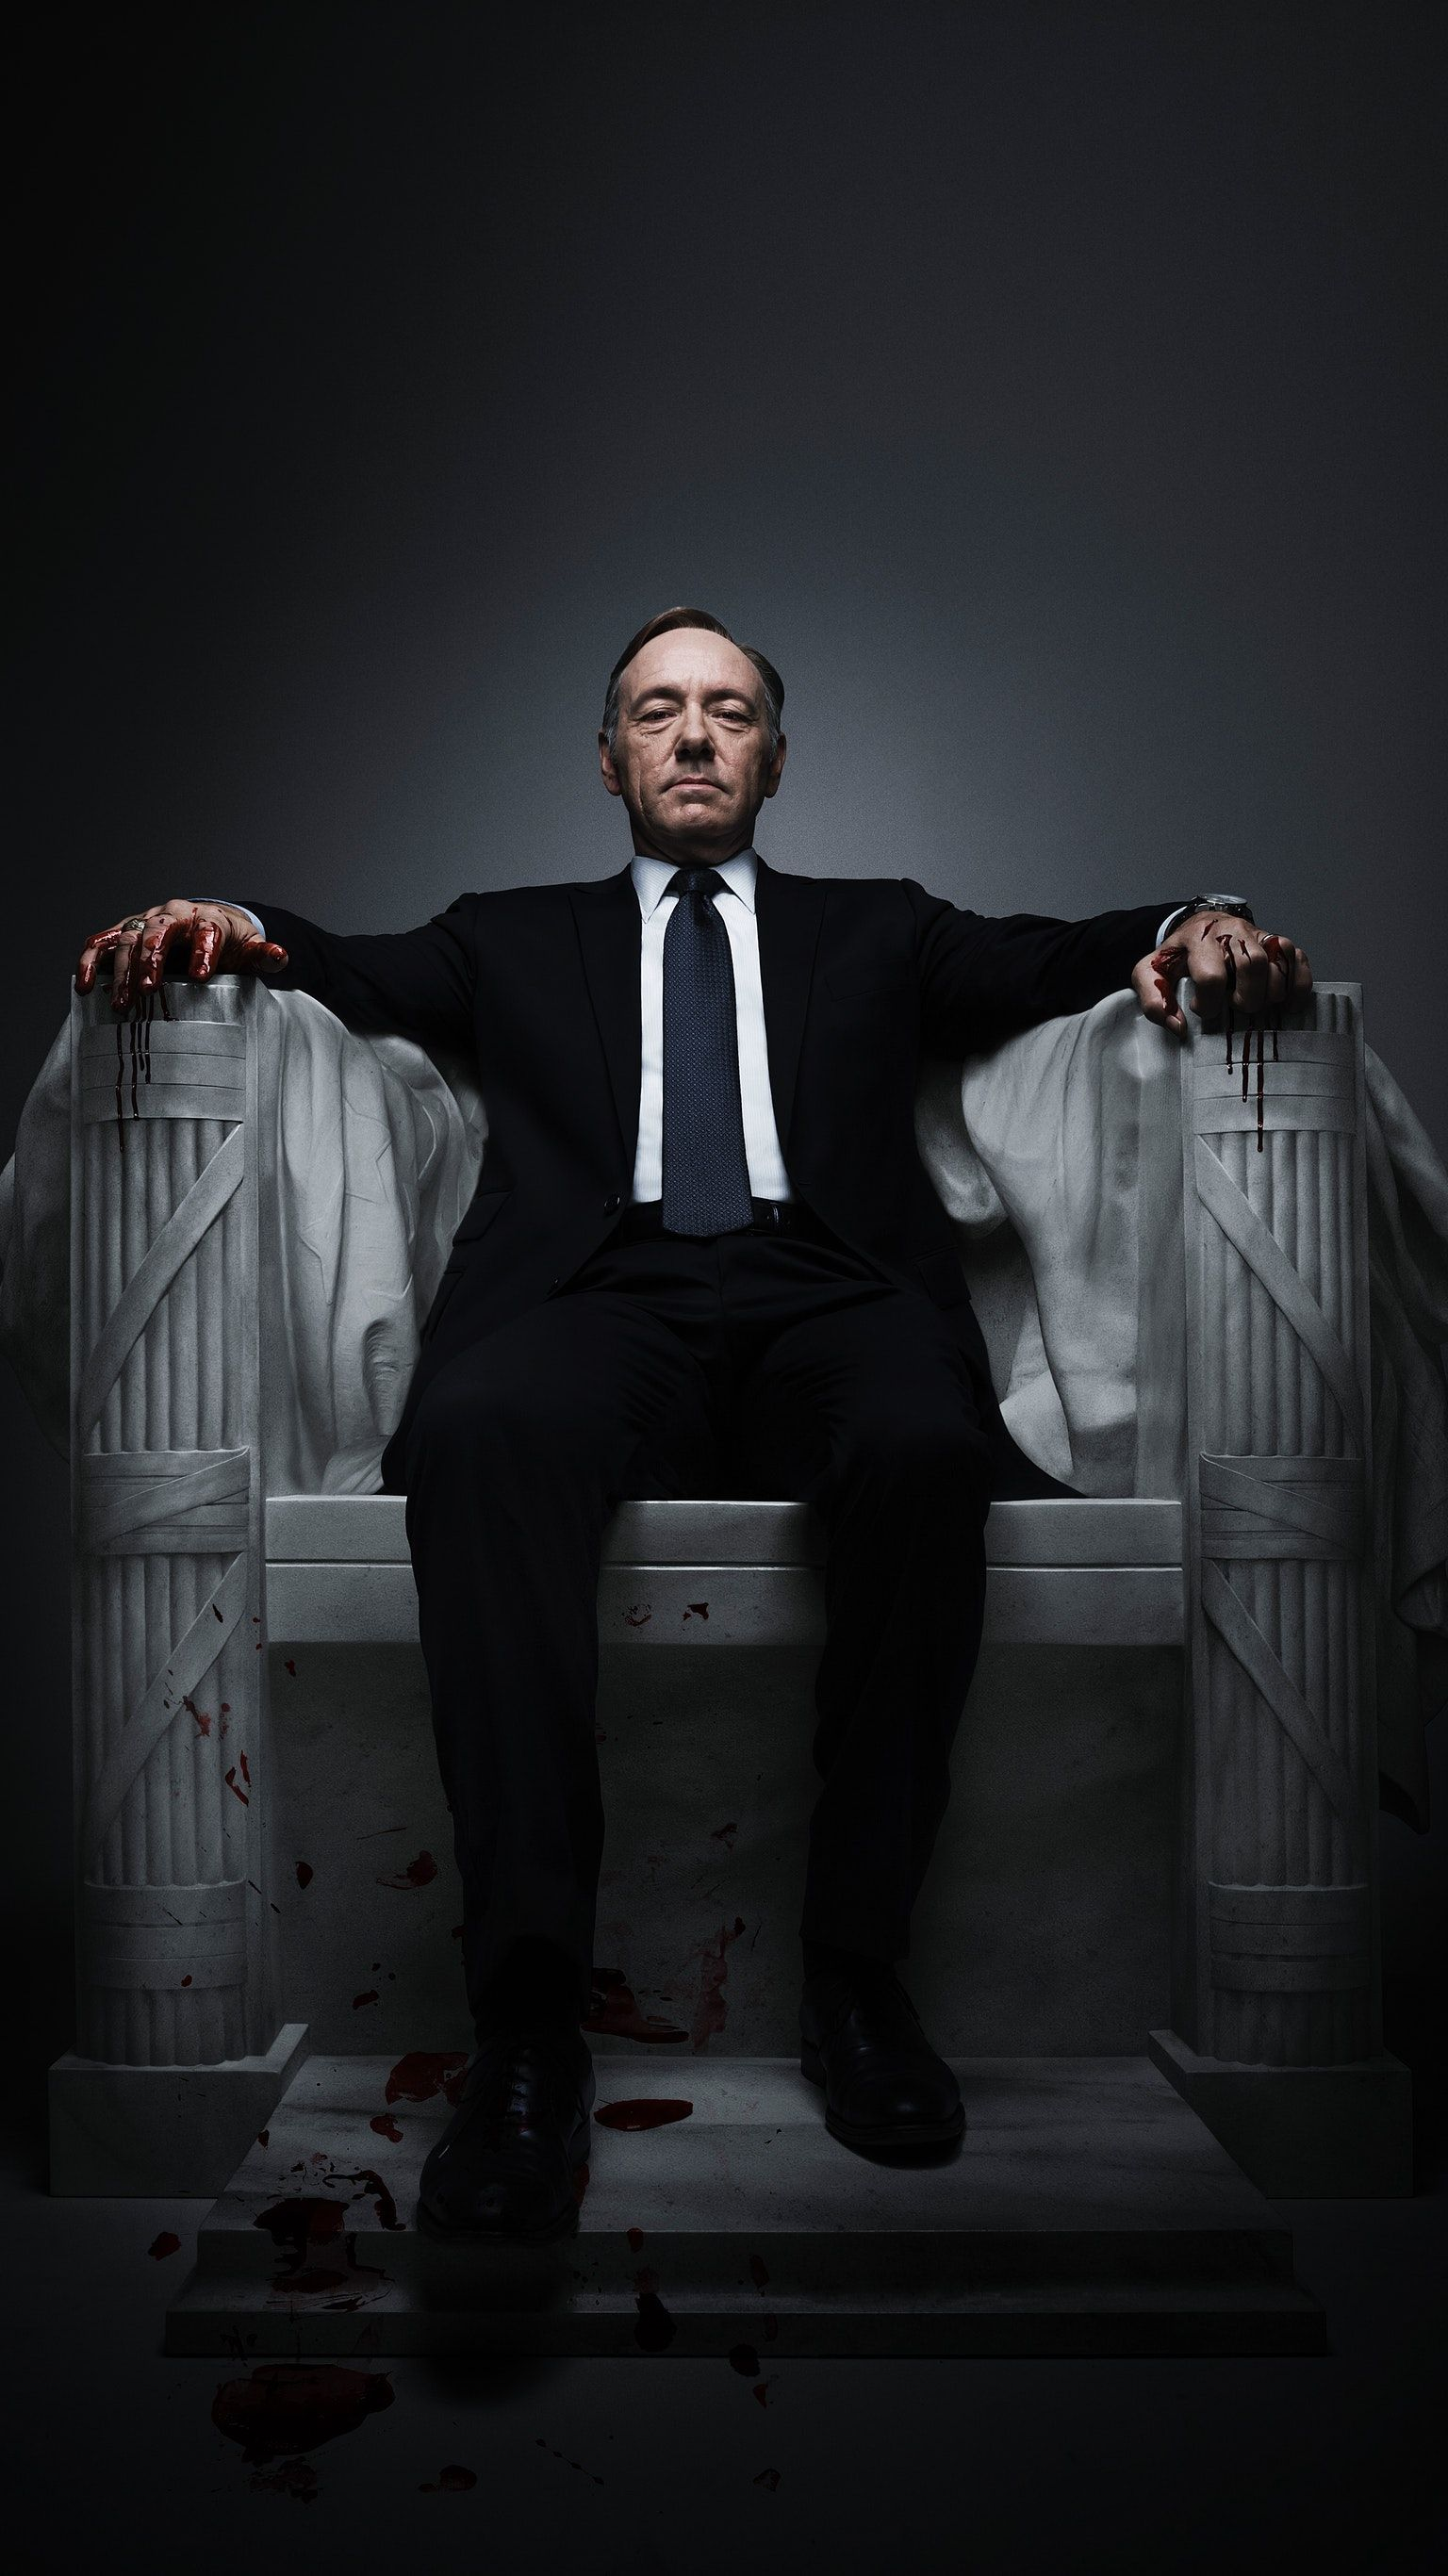 Moviemania Textless High Resolution Movie Wallpapers House Of Cards Poster House Of Cards Frank Underwood